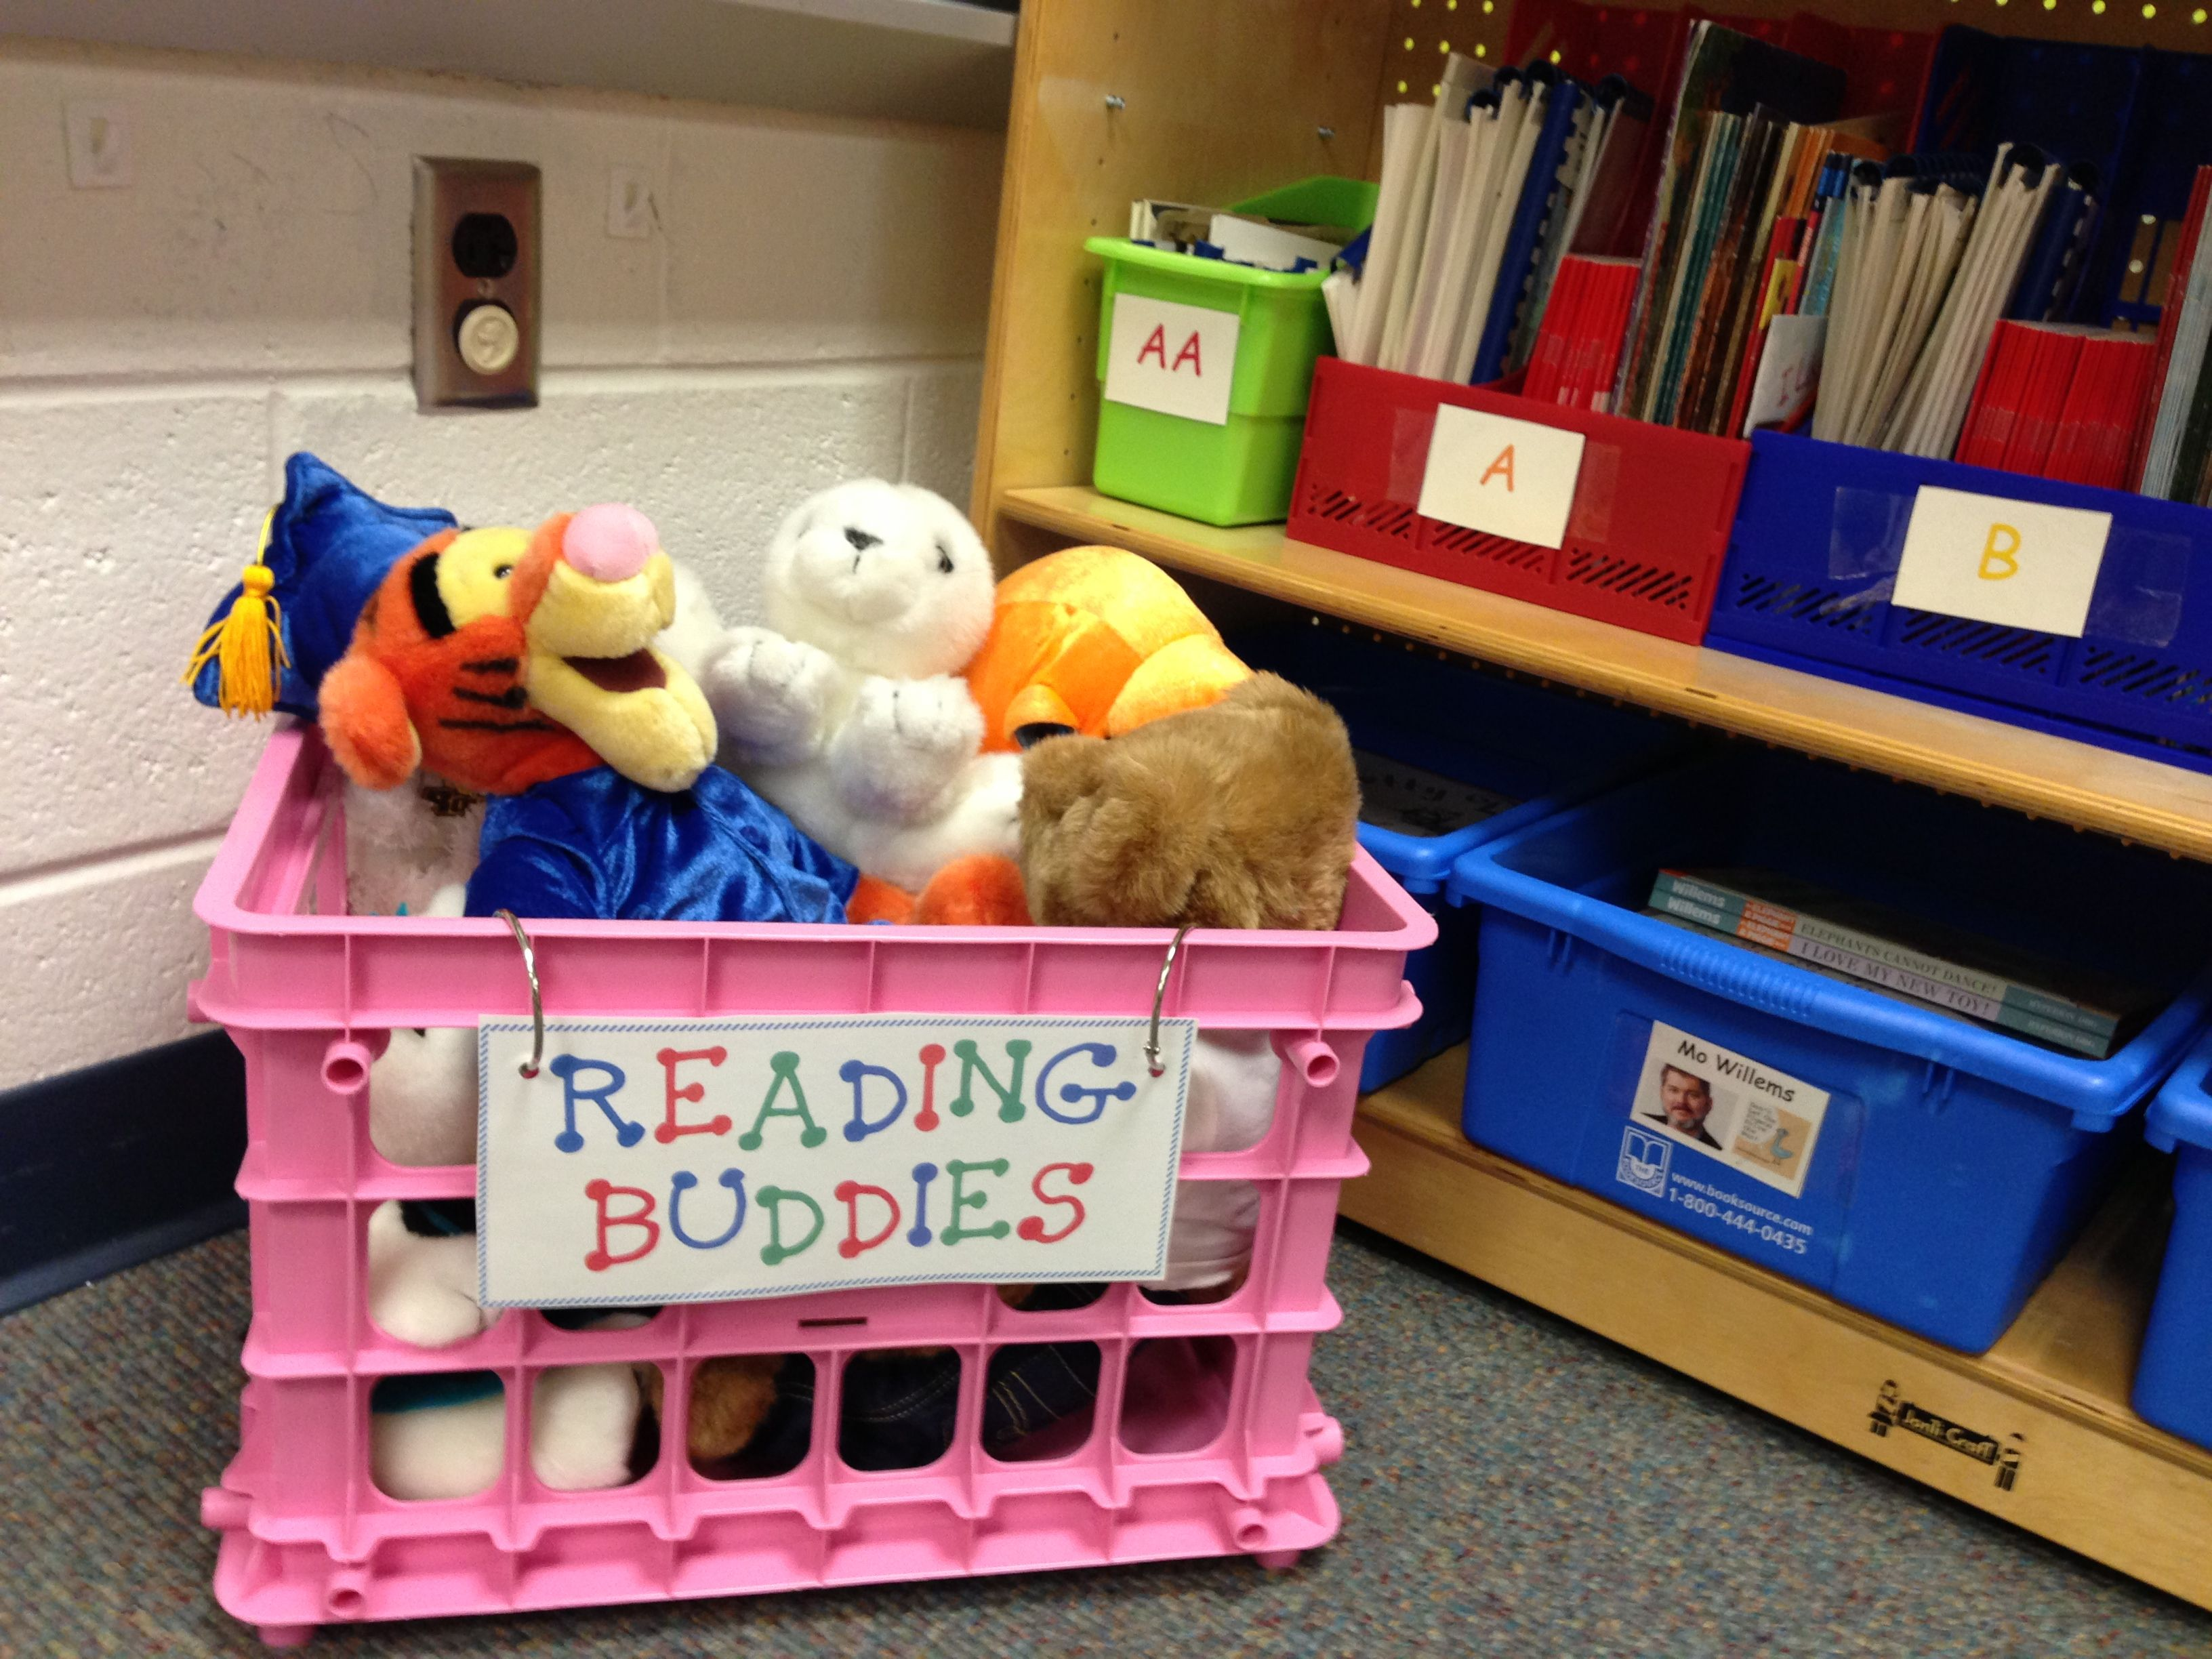 Stuffed Animals In The Classroom Library To Motivate Quiet Independent